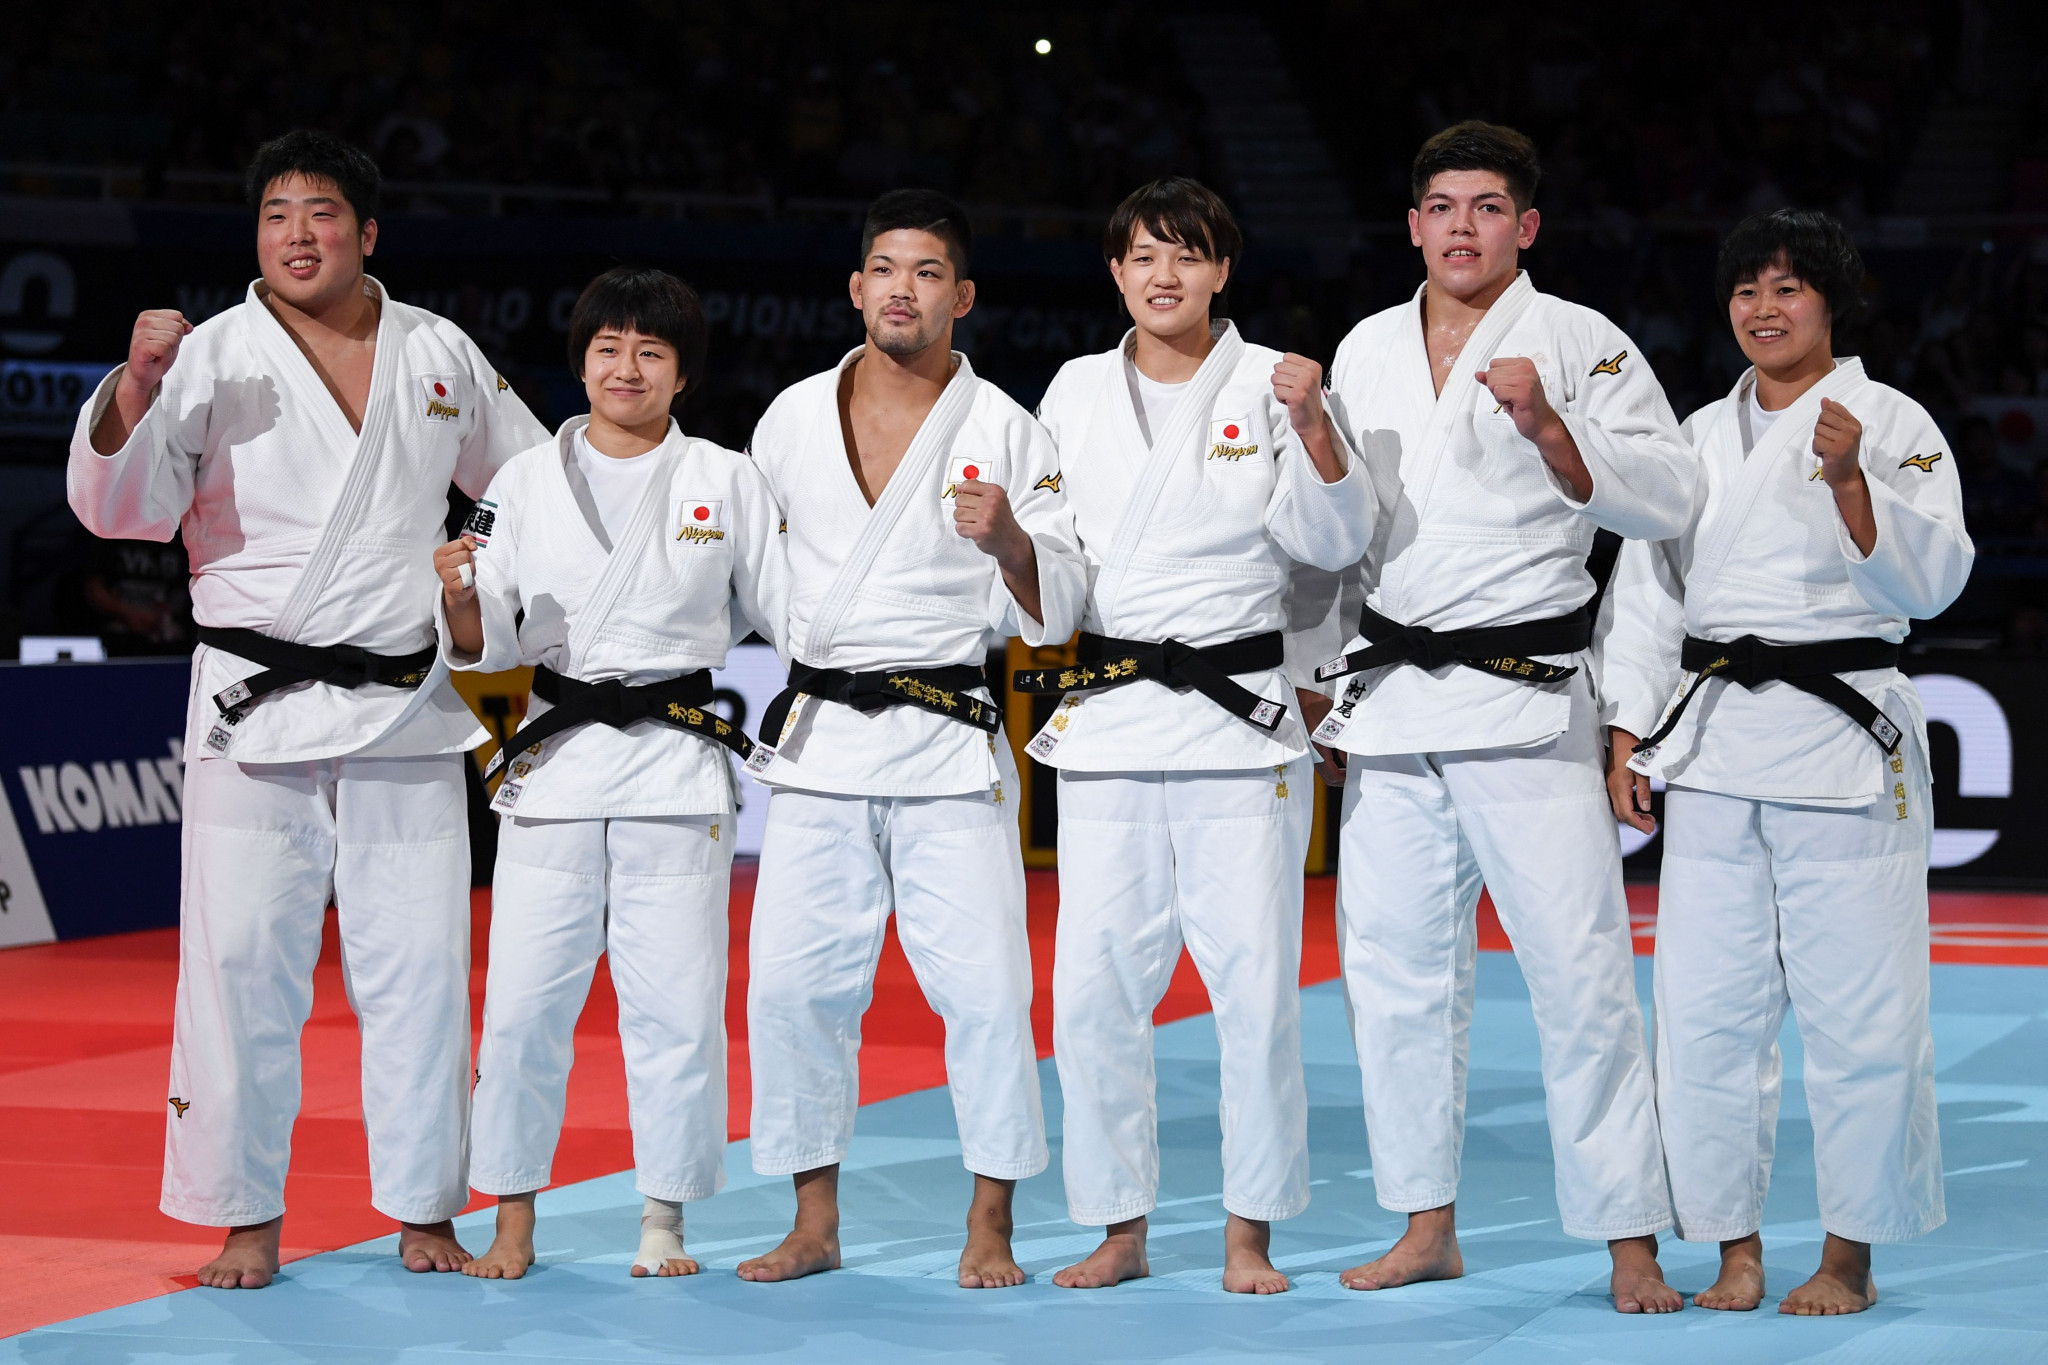 Japan win hat-trick of IJF World Championship mixed team golds by beating France in Tokyo